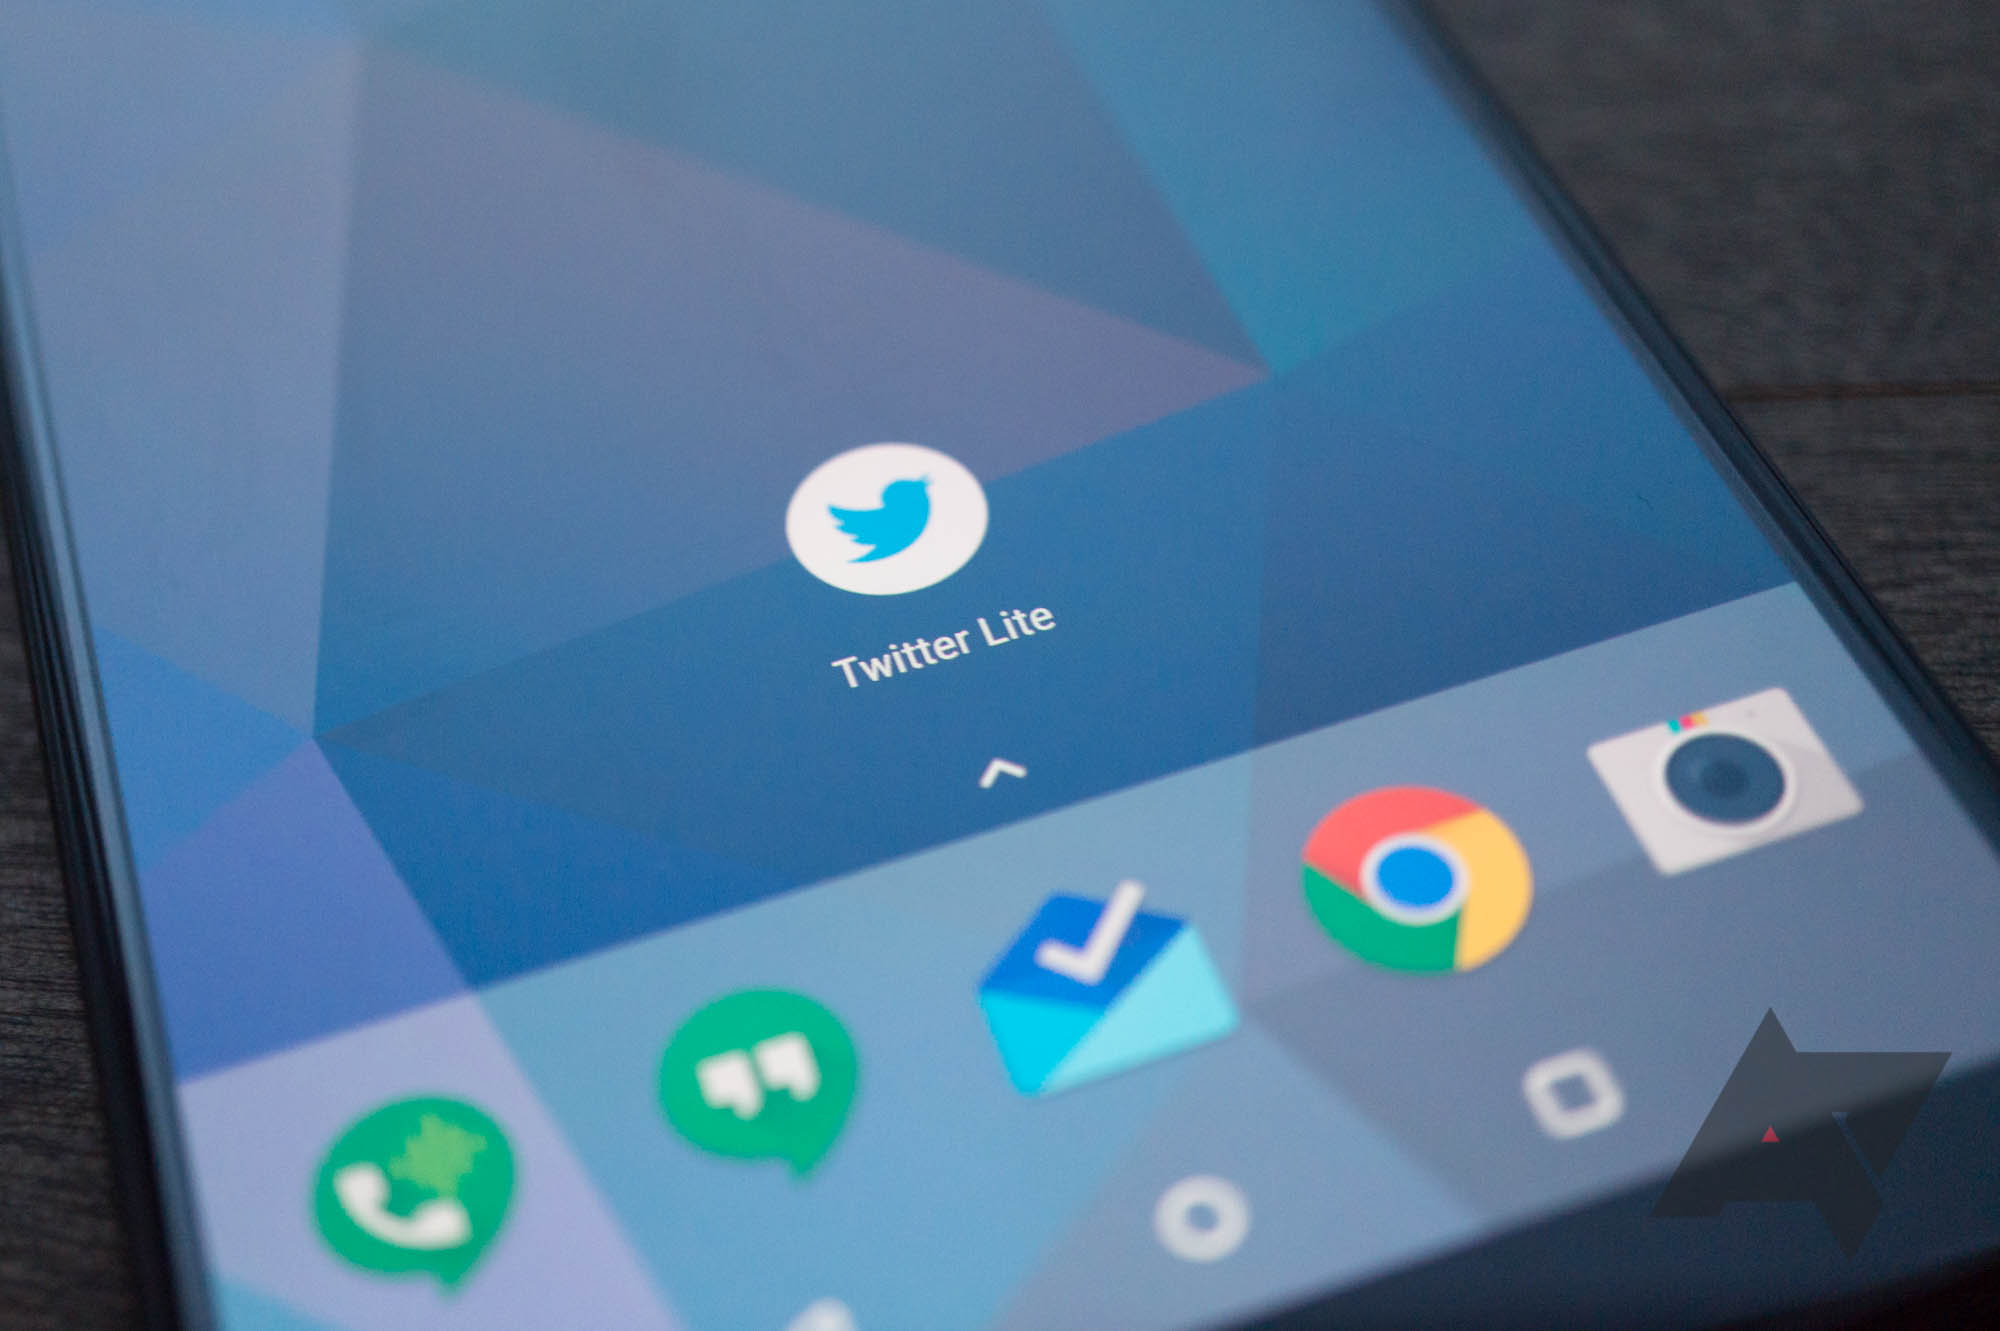 Revenge of the web apps: Google moves to bridge native and web experience